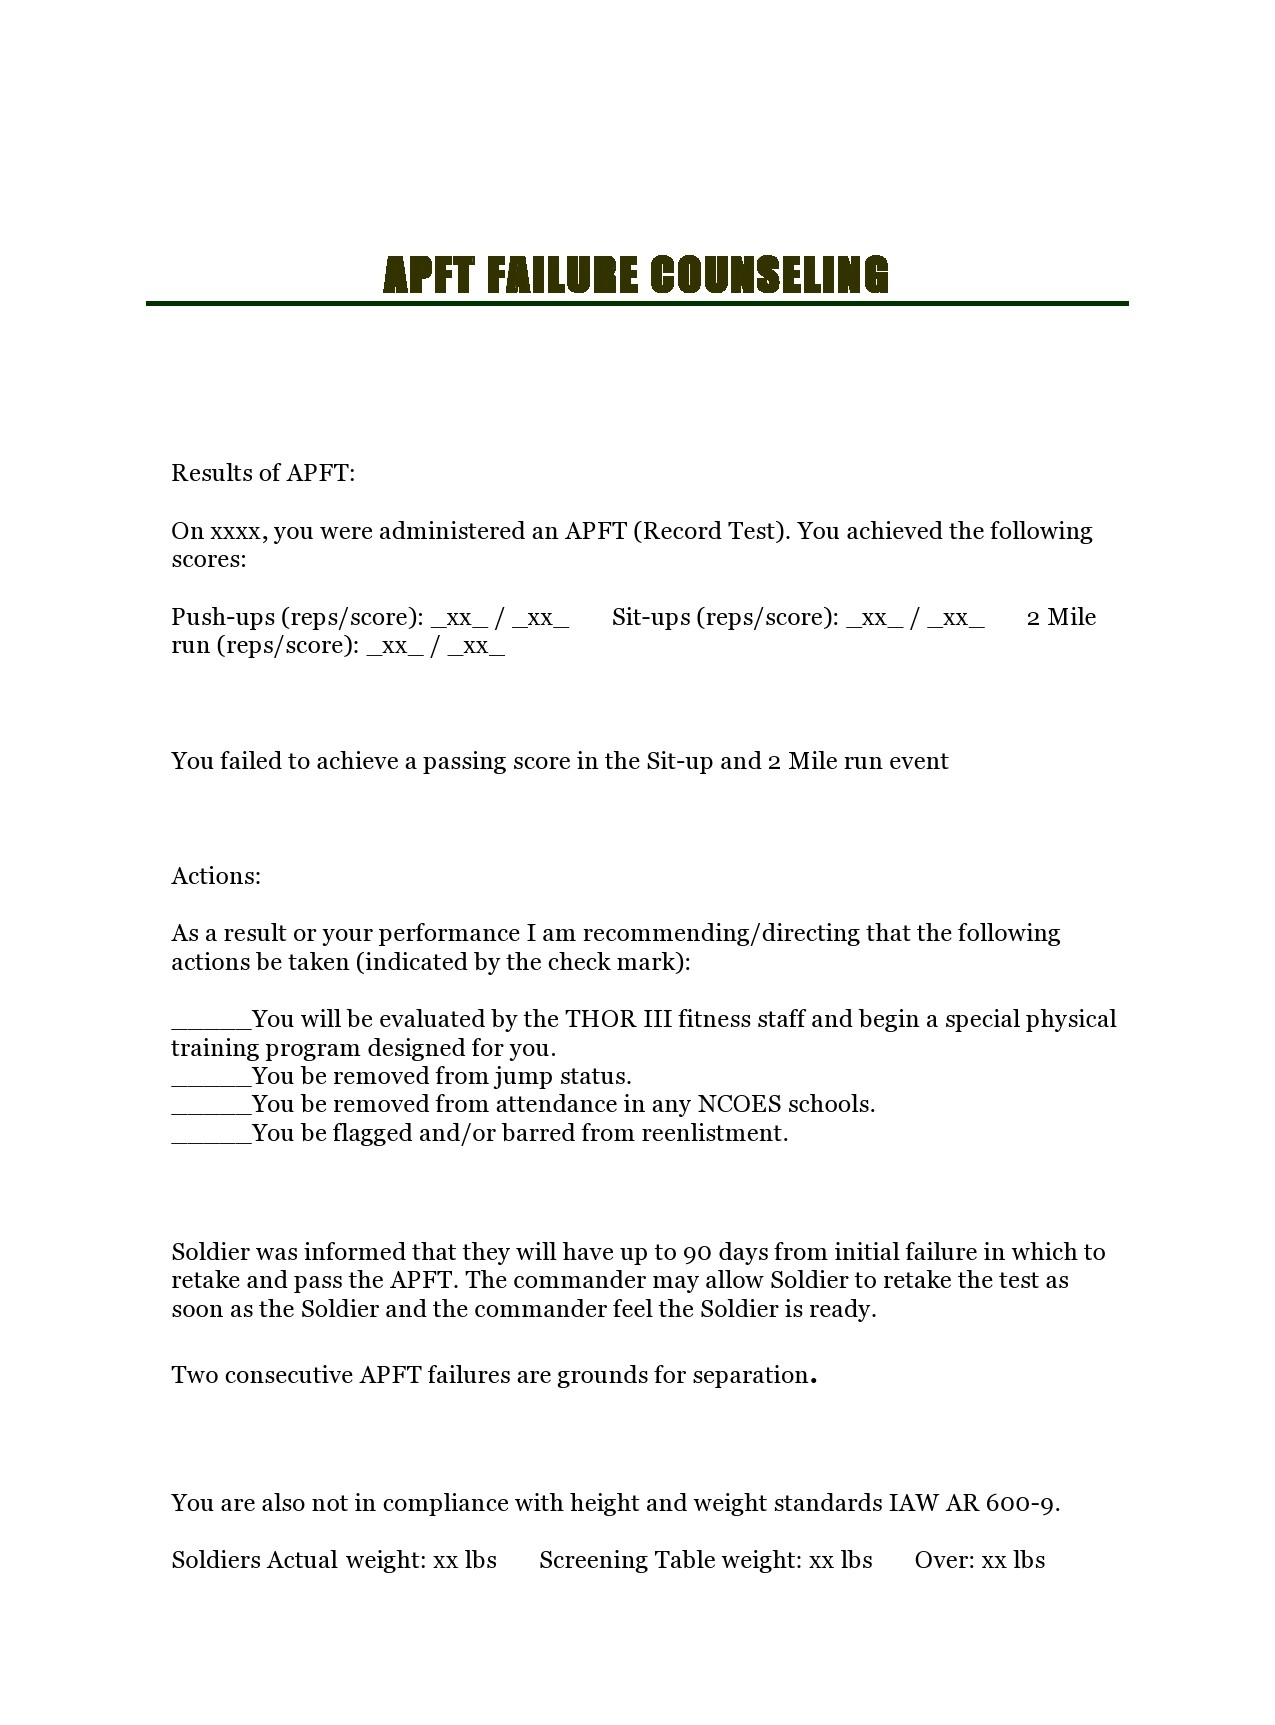 Free army counseling form 09